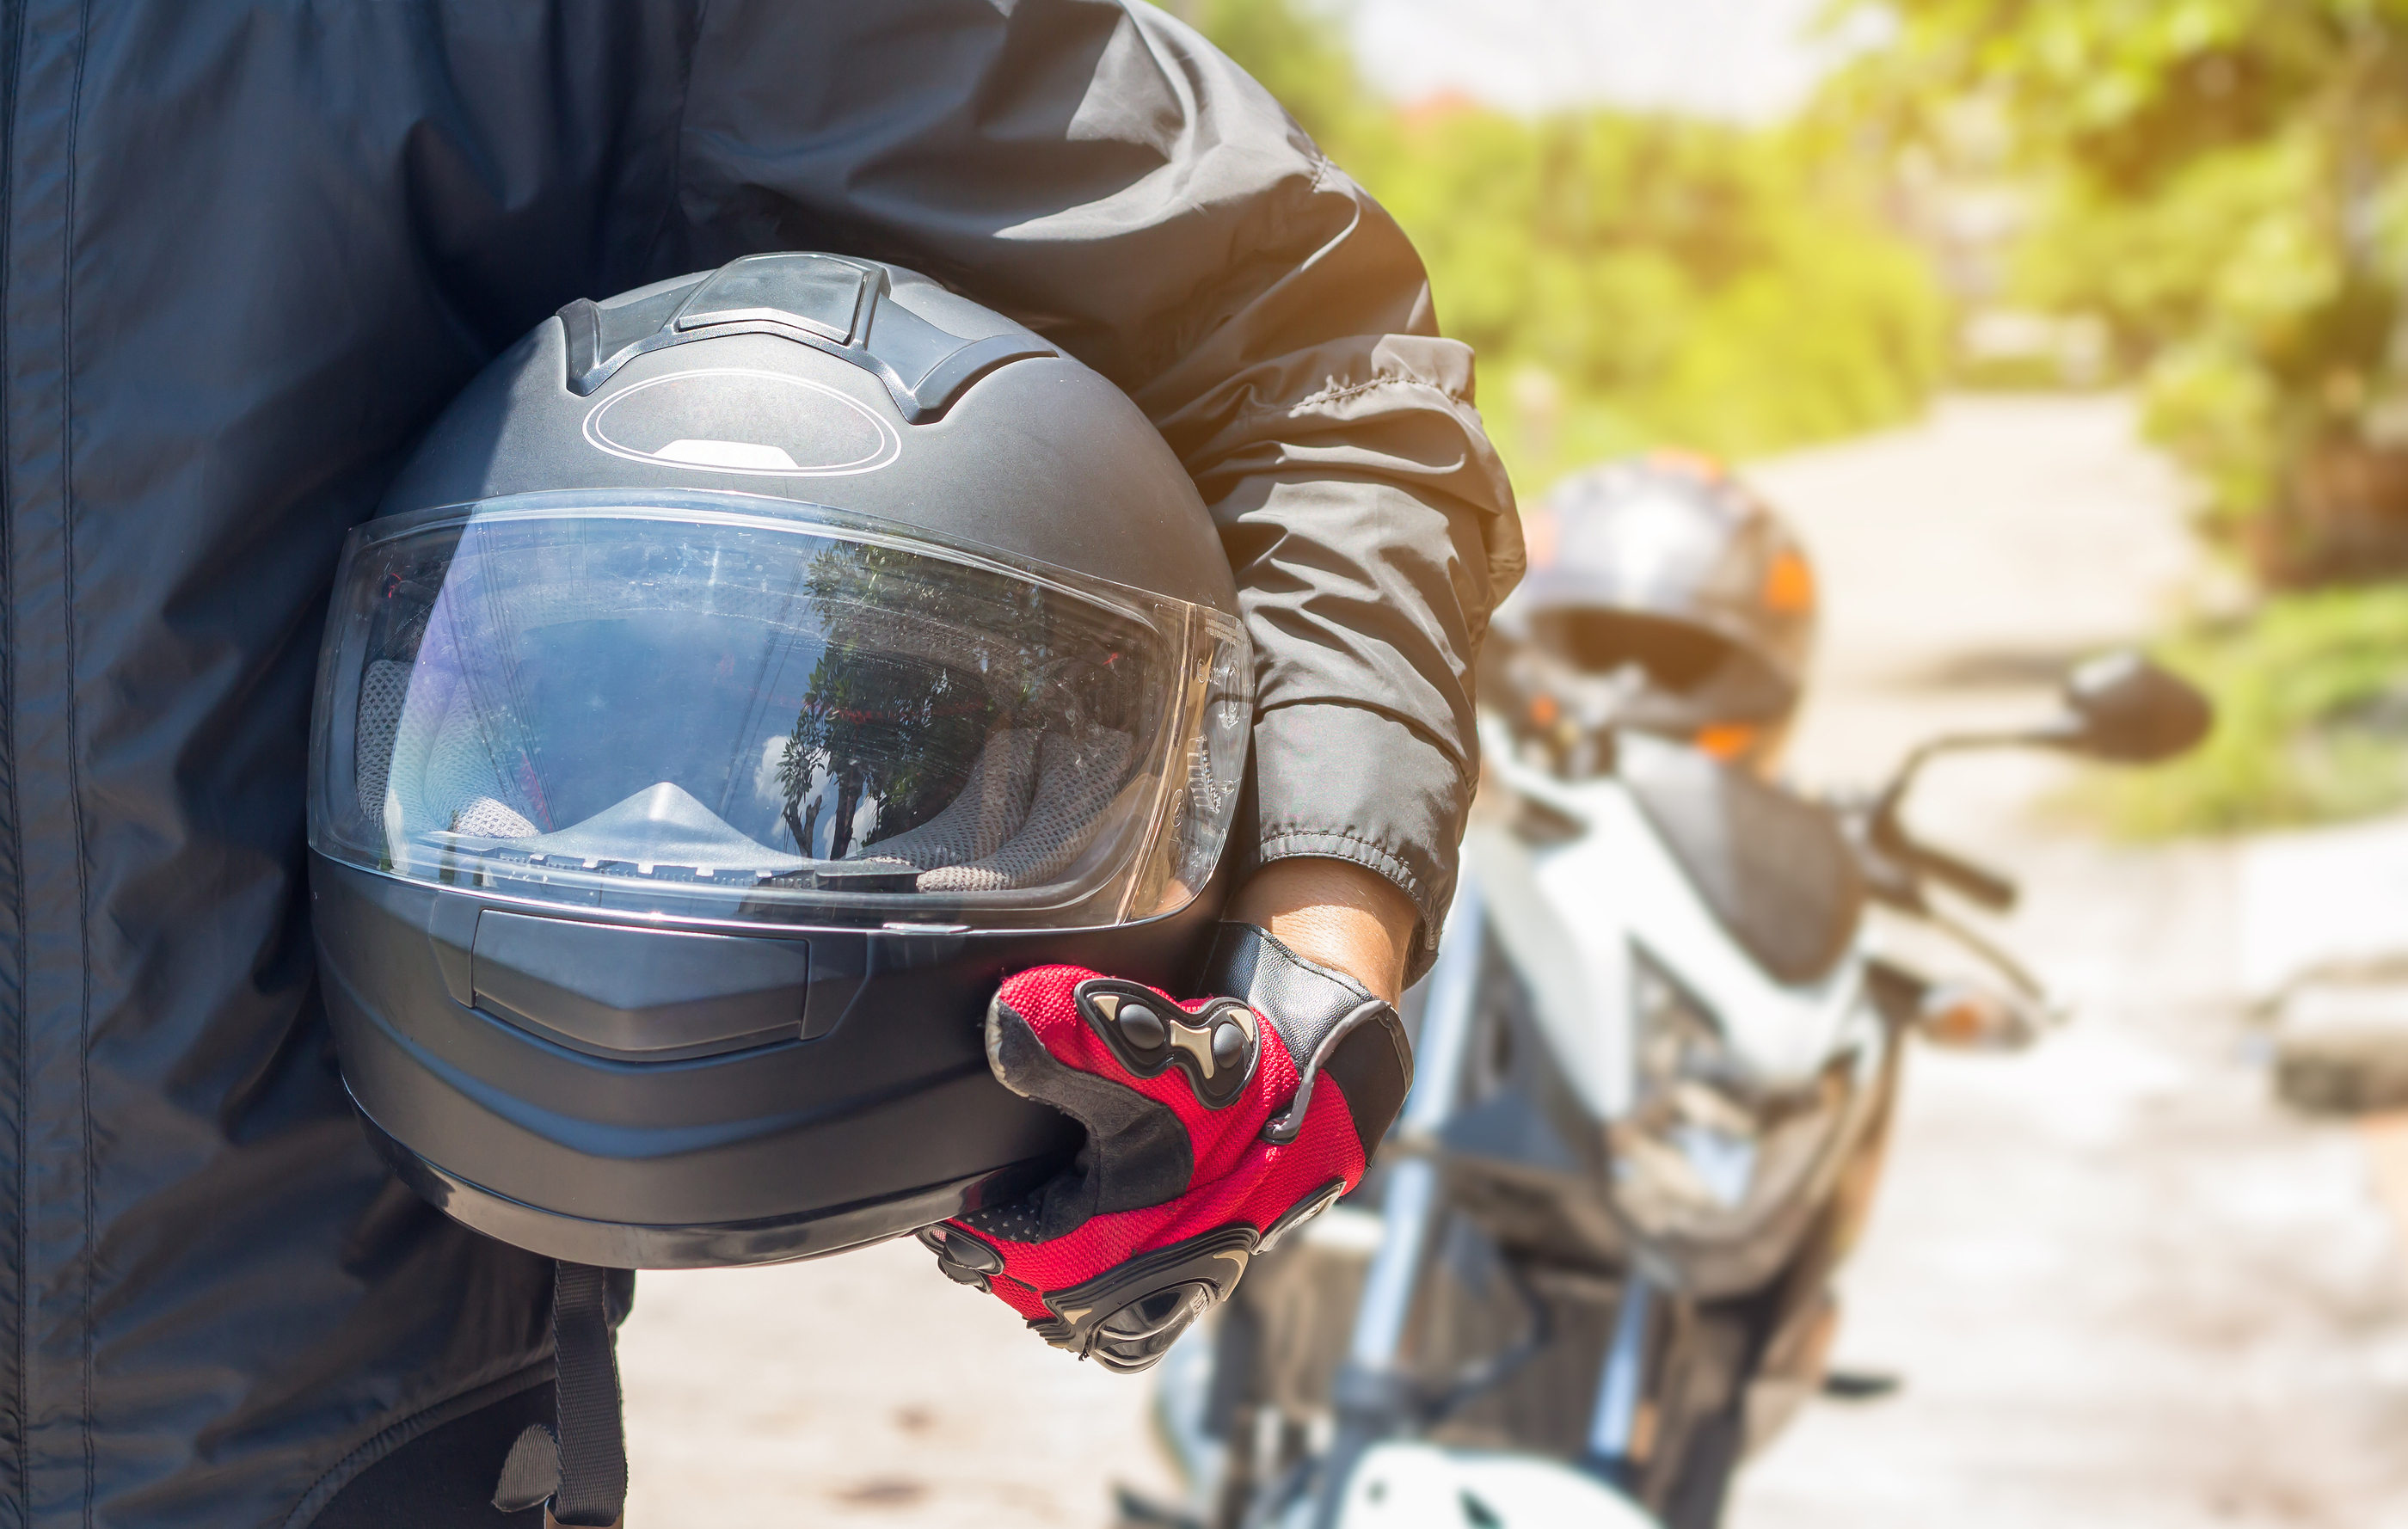 Man riding Motorcycle - white bear lake motorcycle accident attorneys - sand law llc